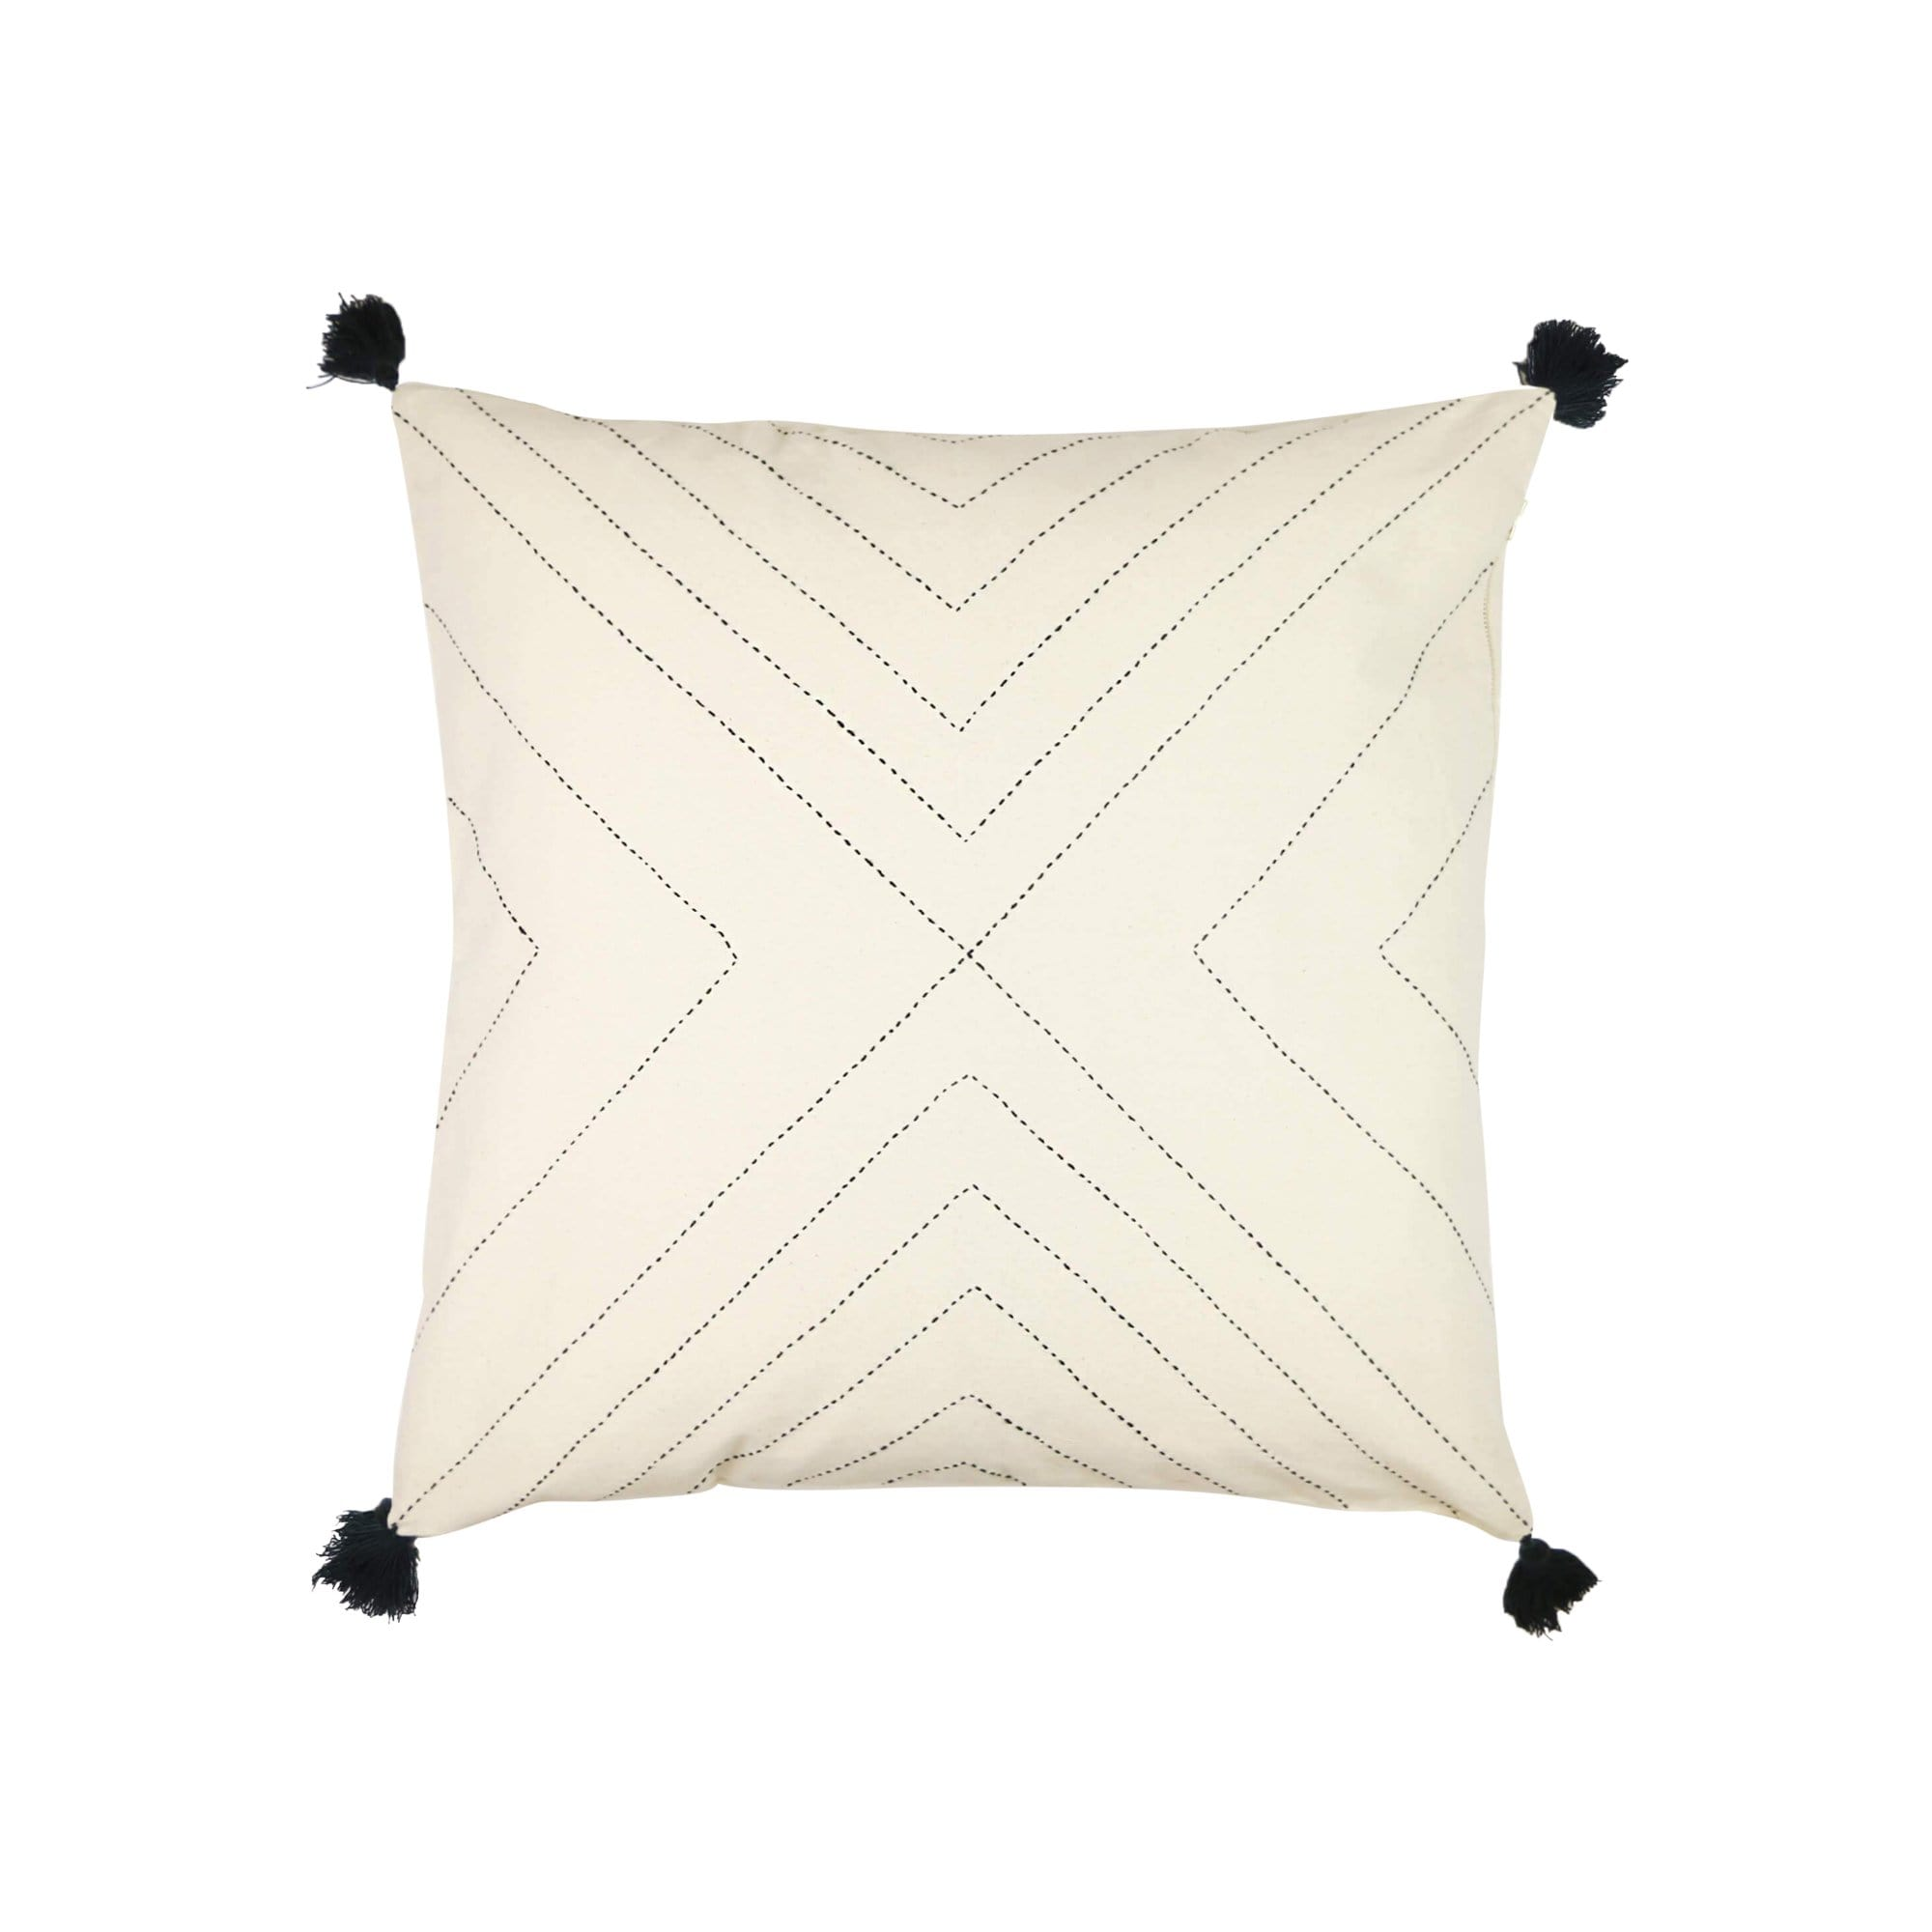 Anchal Project Cushions + Throws Bone Geometric Stitch Throw Pillow